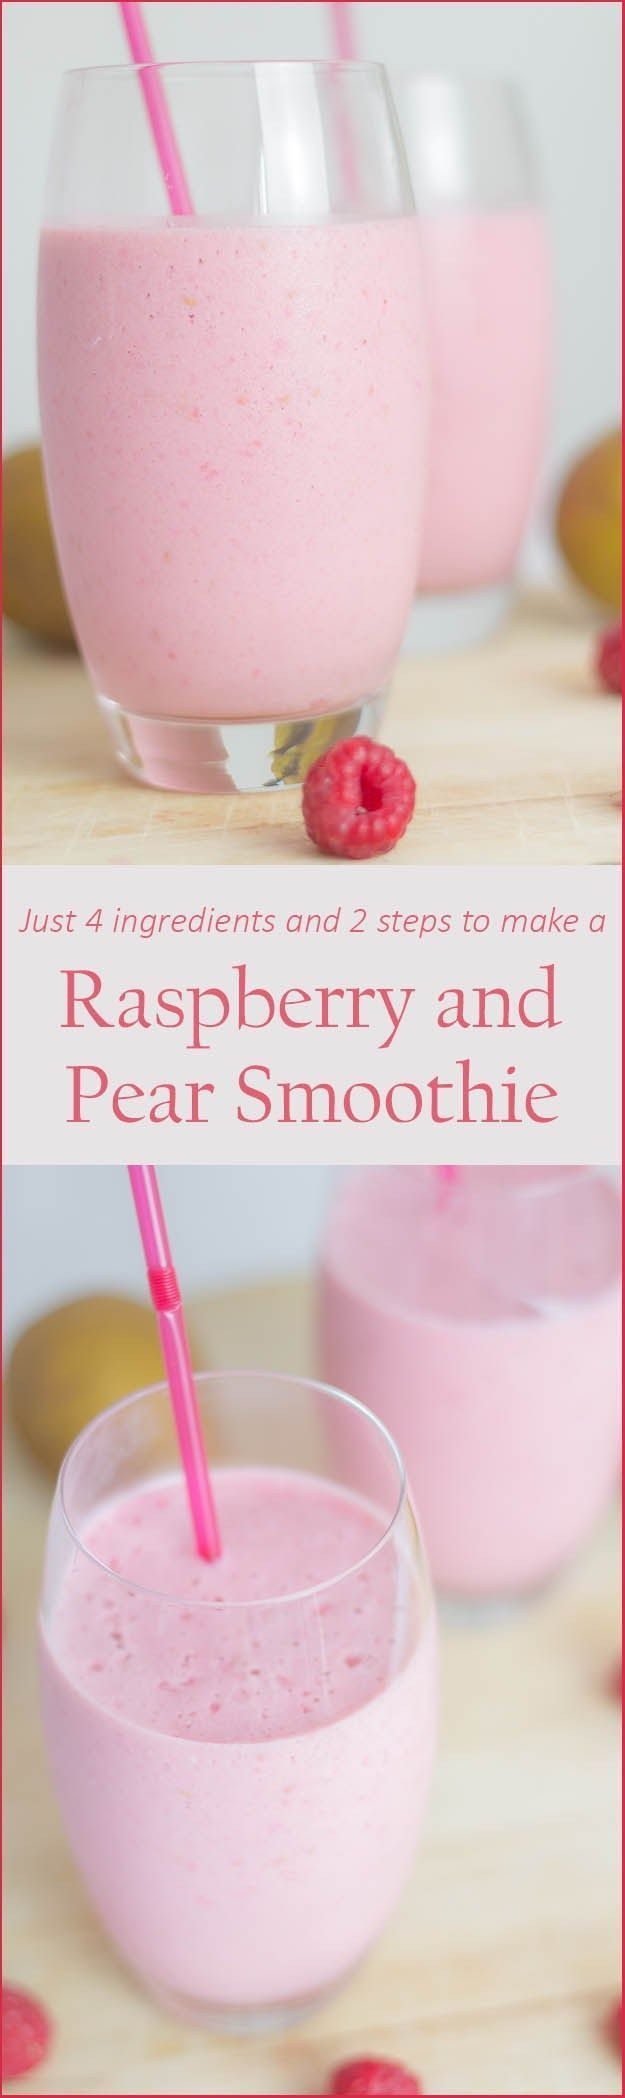 A delicious and naturally sweetened breakfast or pick me up snack smoothie. Creamy tasting and with plenty of zing.